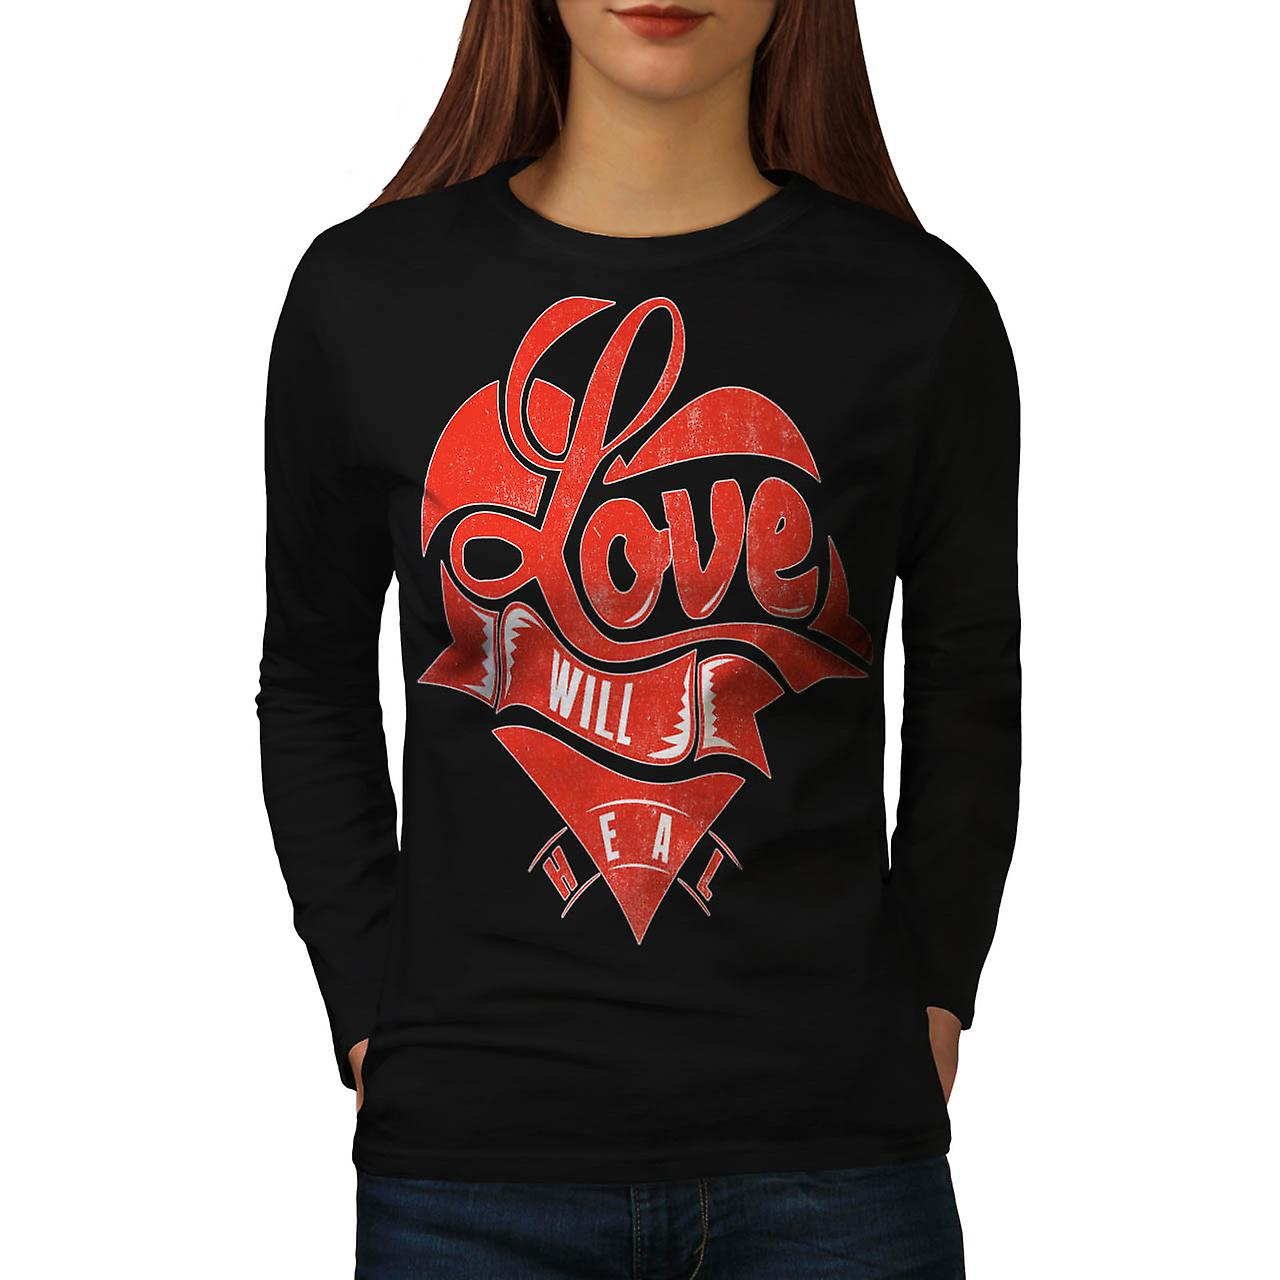 Love Will Heal Life Broken Heart Women Black Long Sleeve T-shirt | Wellcoda